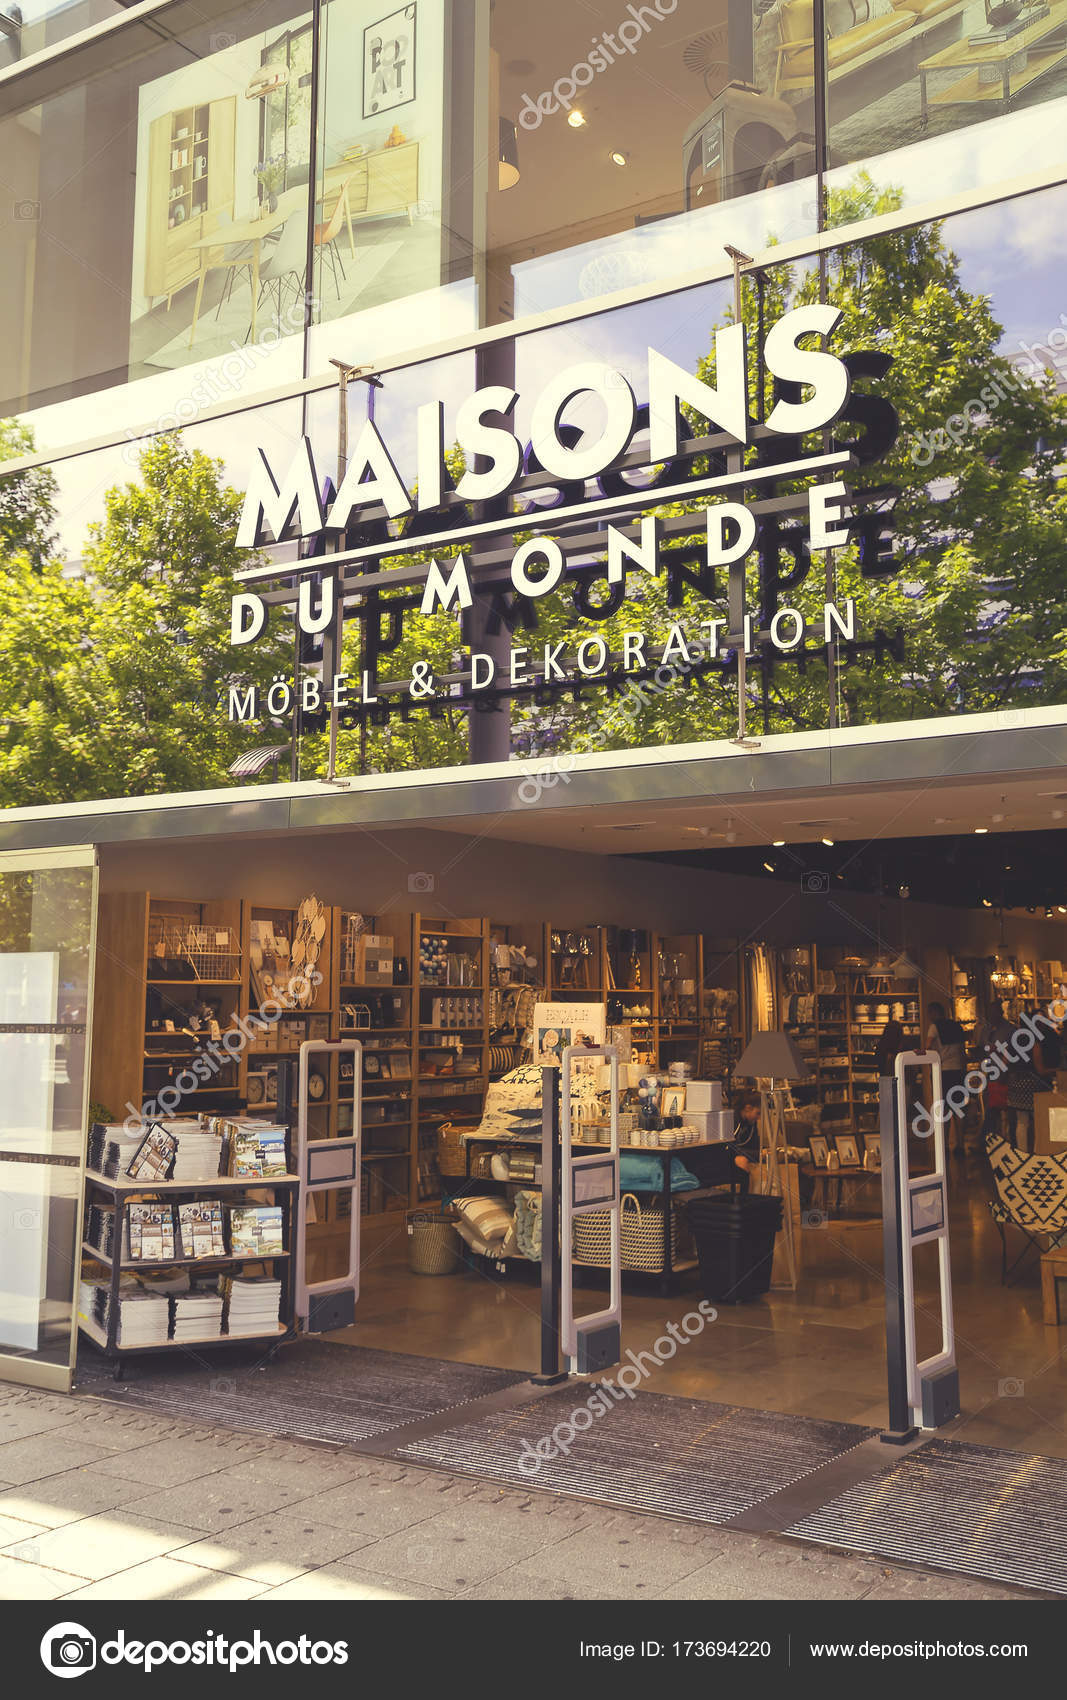 Dresden germany june 10 2017 maisons du monde store exterior is a french furniture and decoration company founded in brest in 1990 vintage style